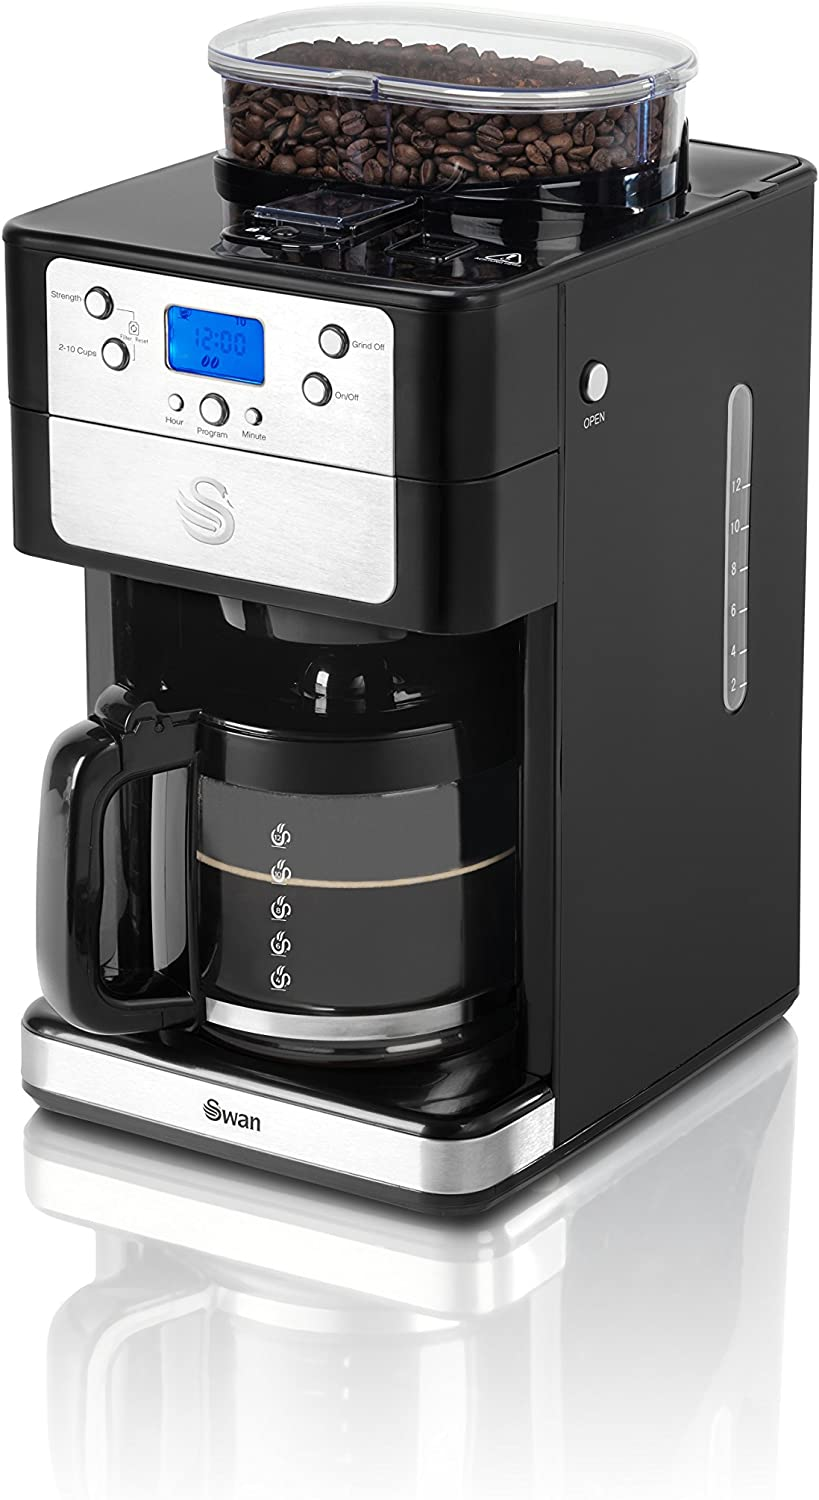 Coffee Maker by Swan All In One Bean to Cup With A Coffee Pot Perfect Coffee Any Time Of Day 1.25L